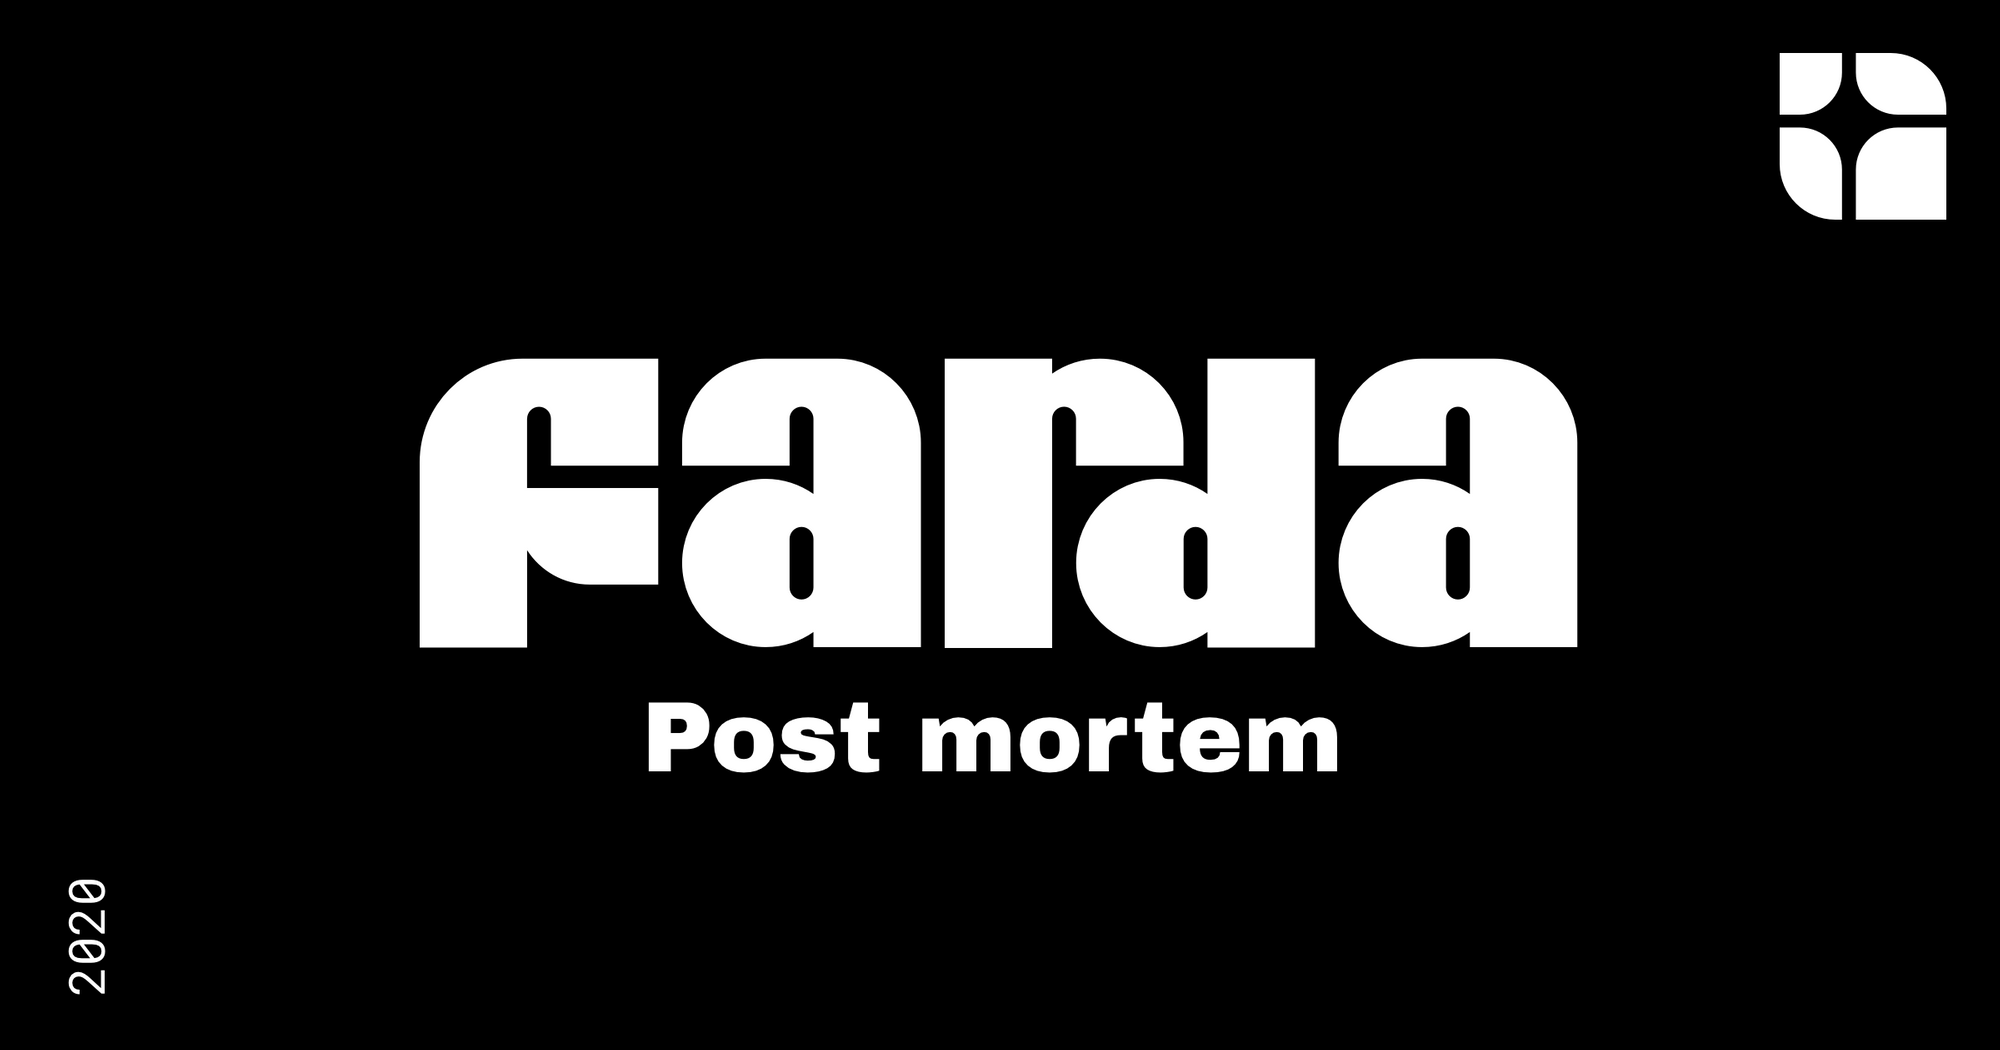 Farda: Post Mortem